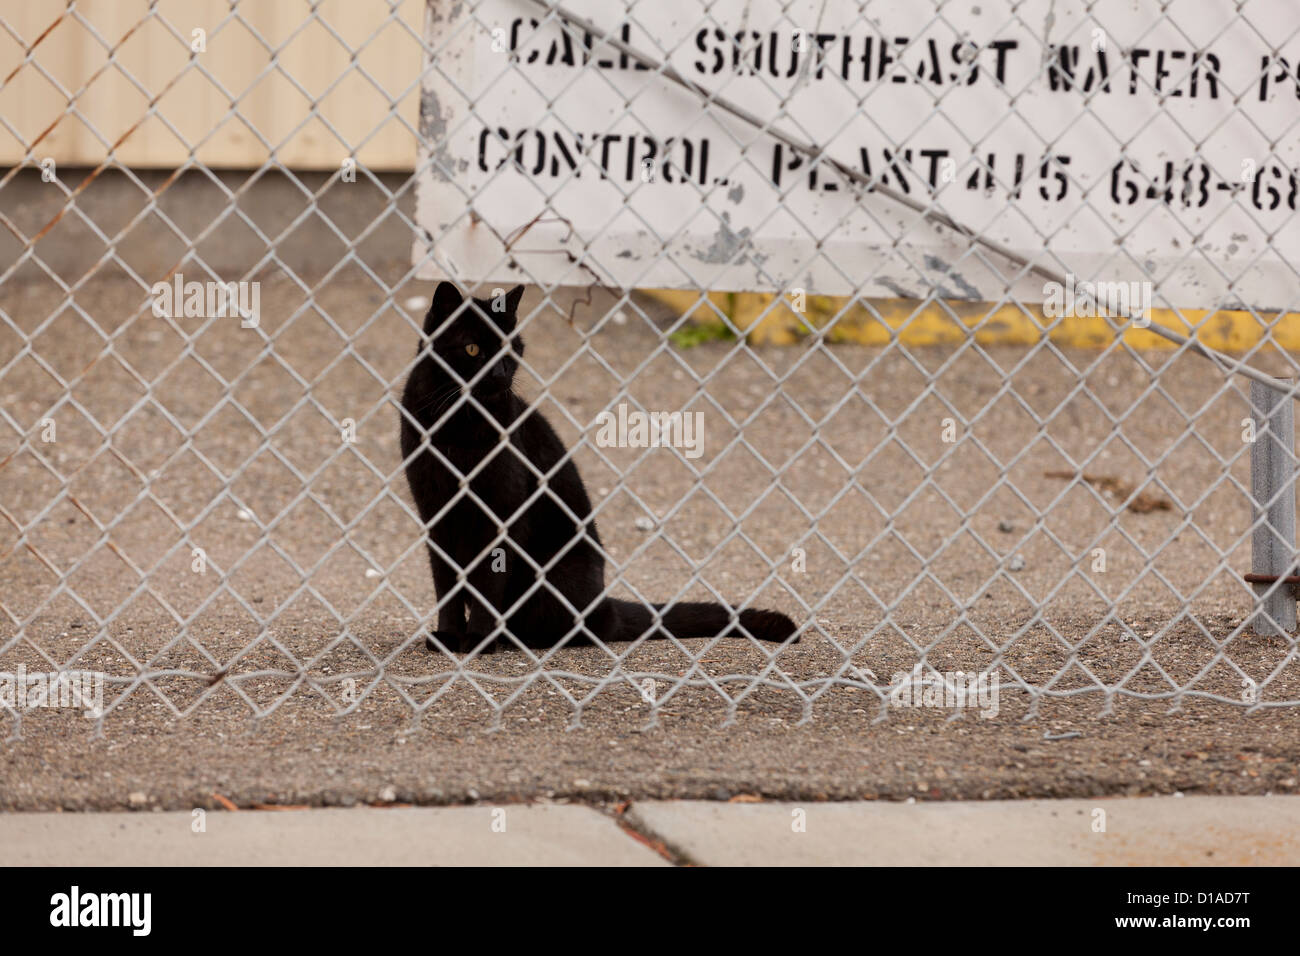 Black cat sitting behind chain link fence - Stock Image